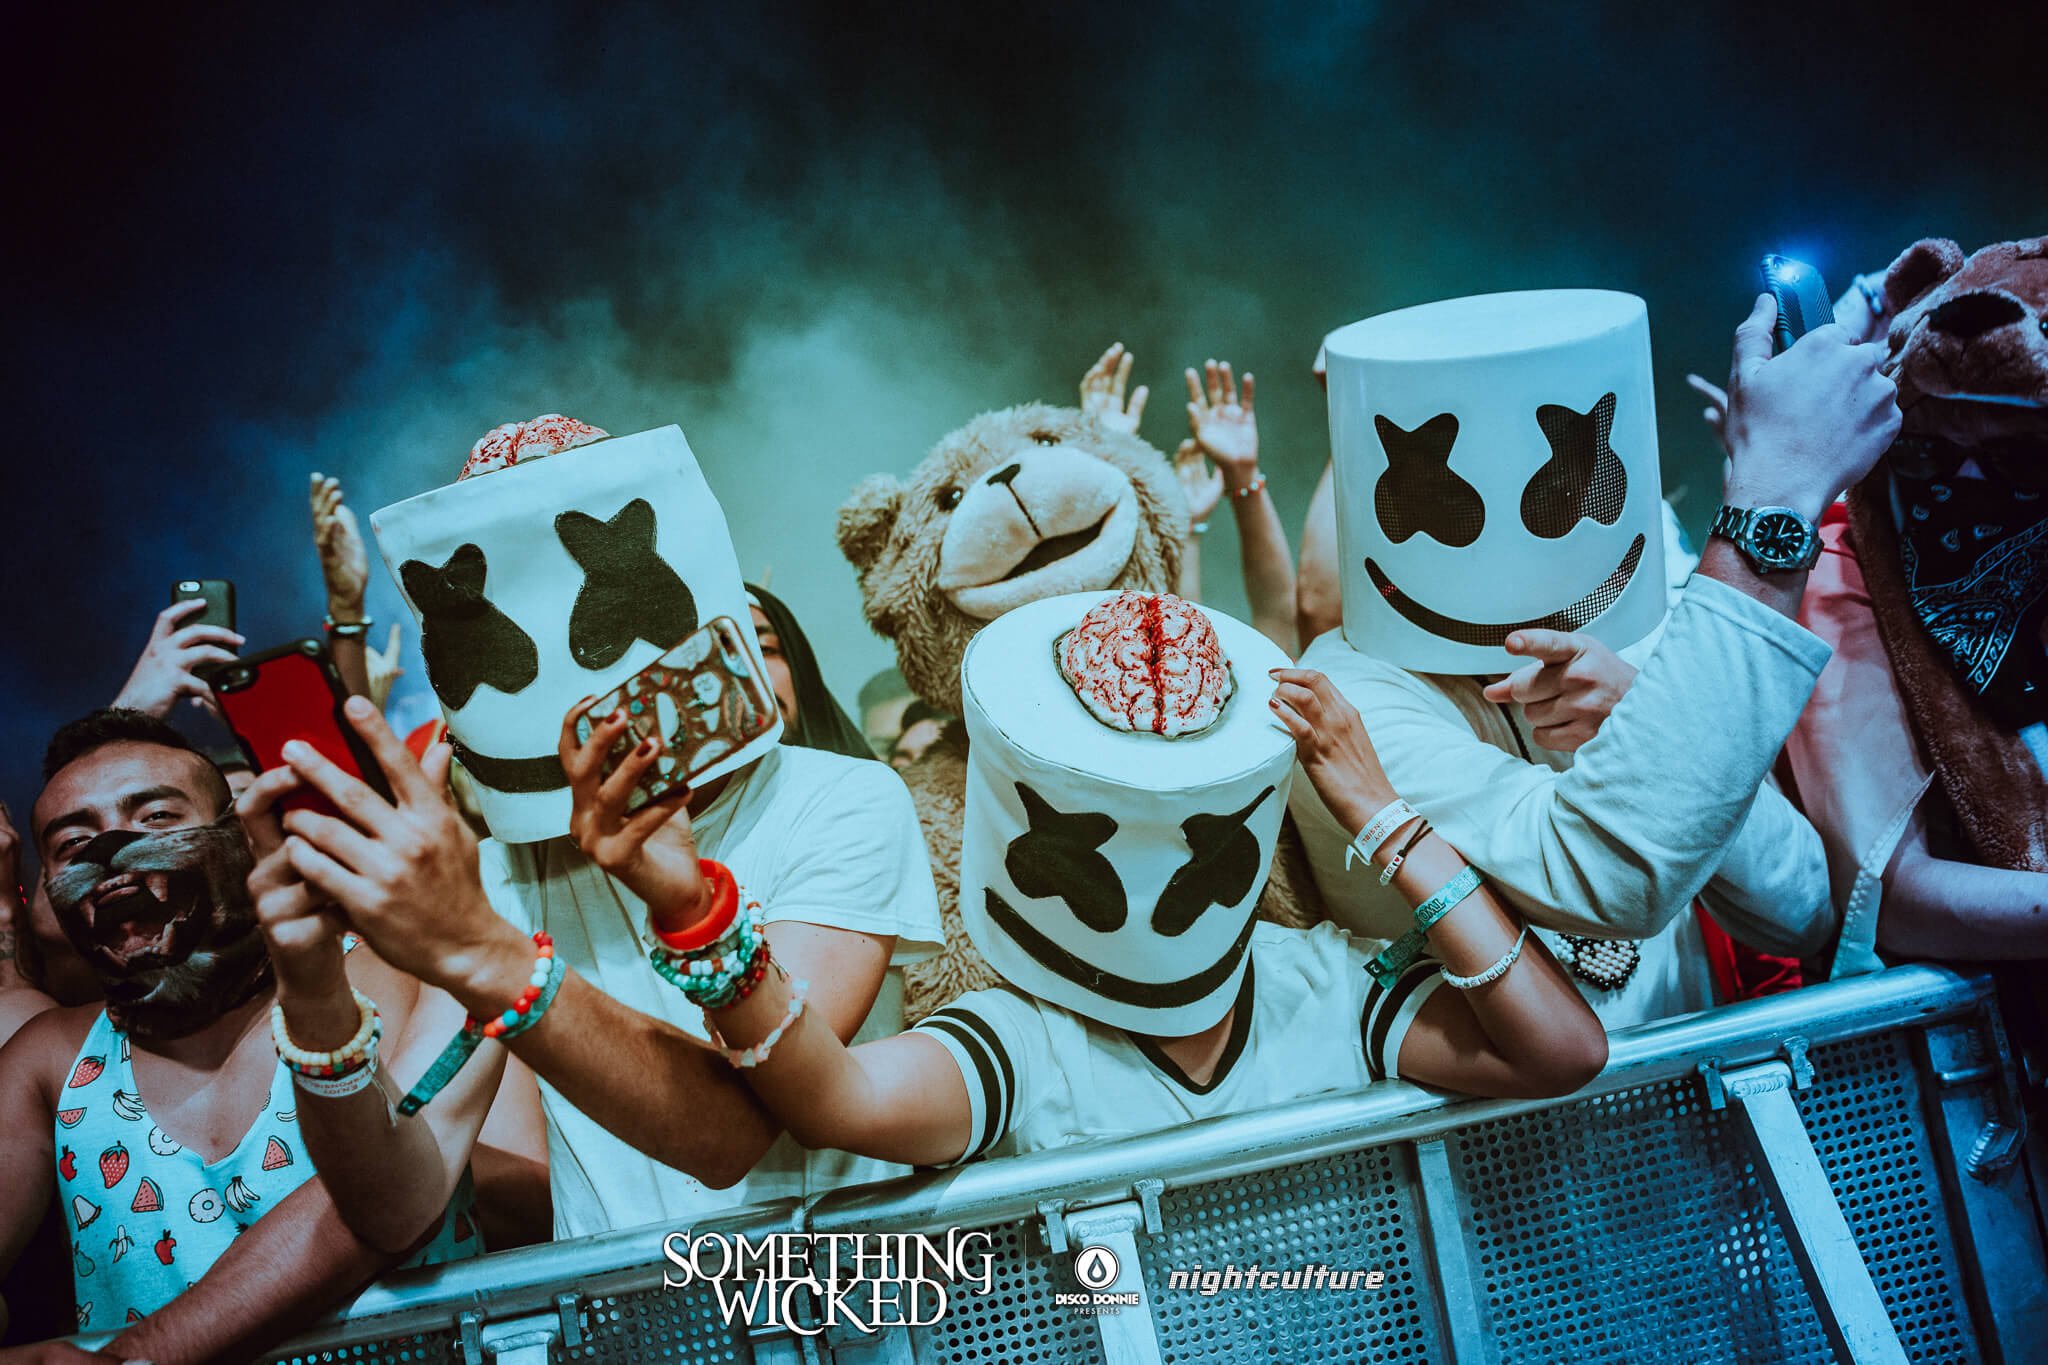 marshmello fans in costume front row